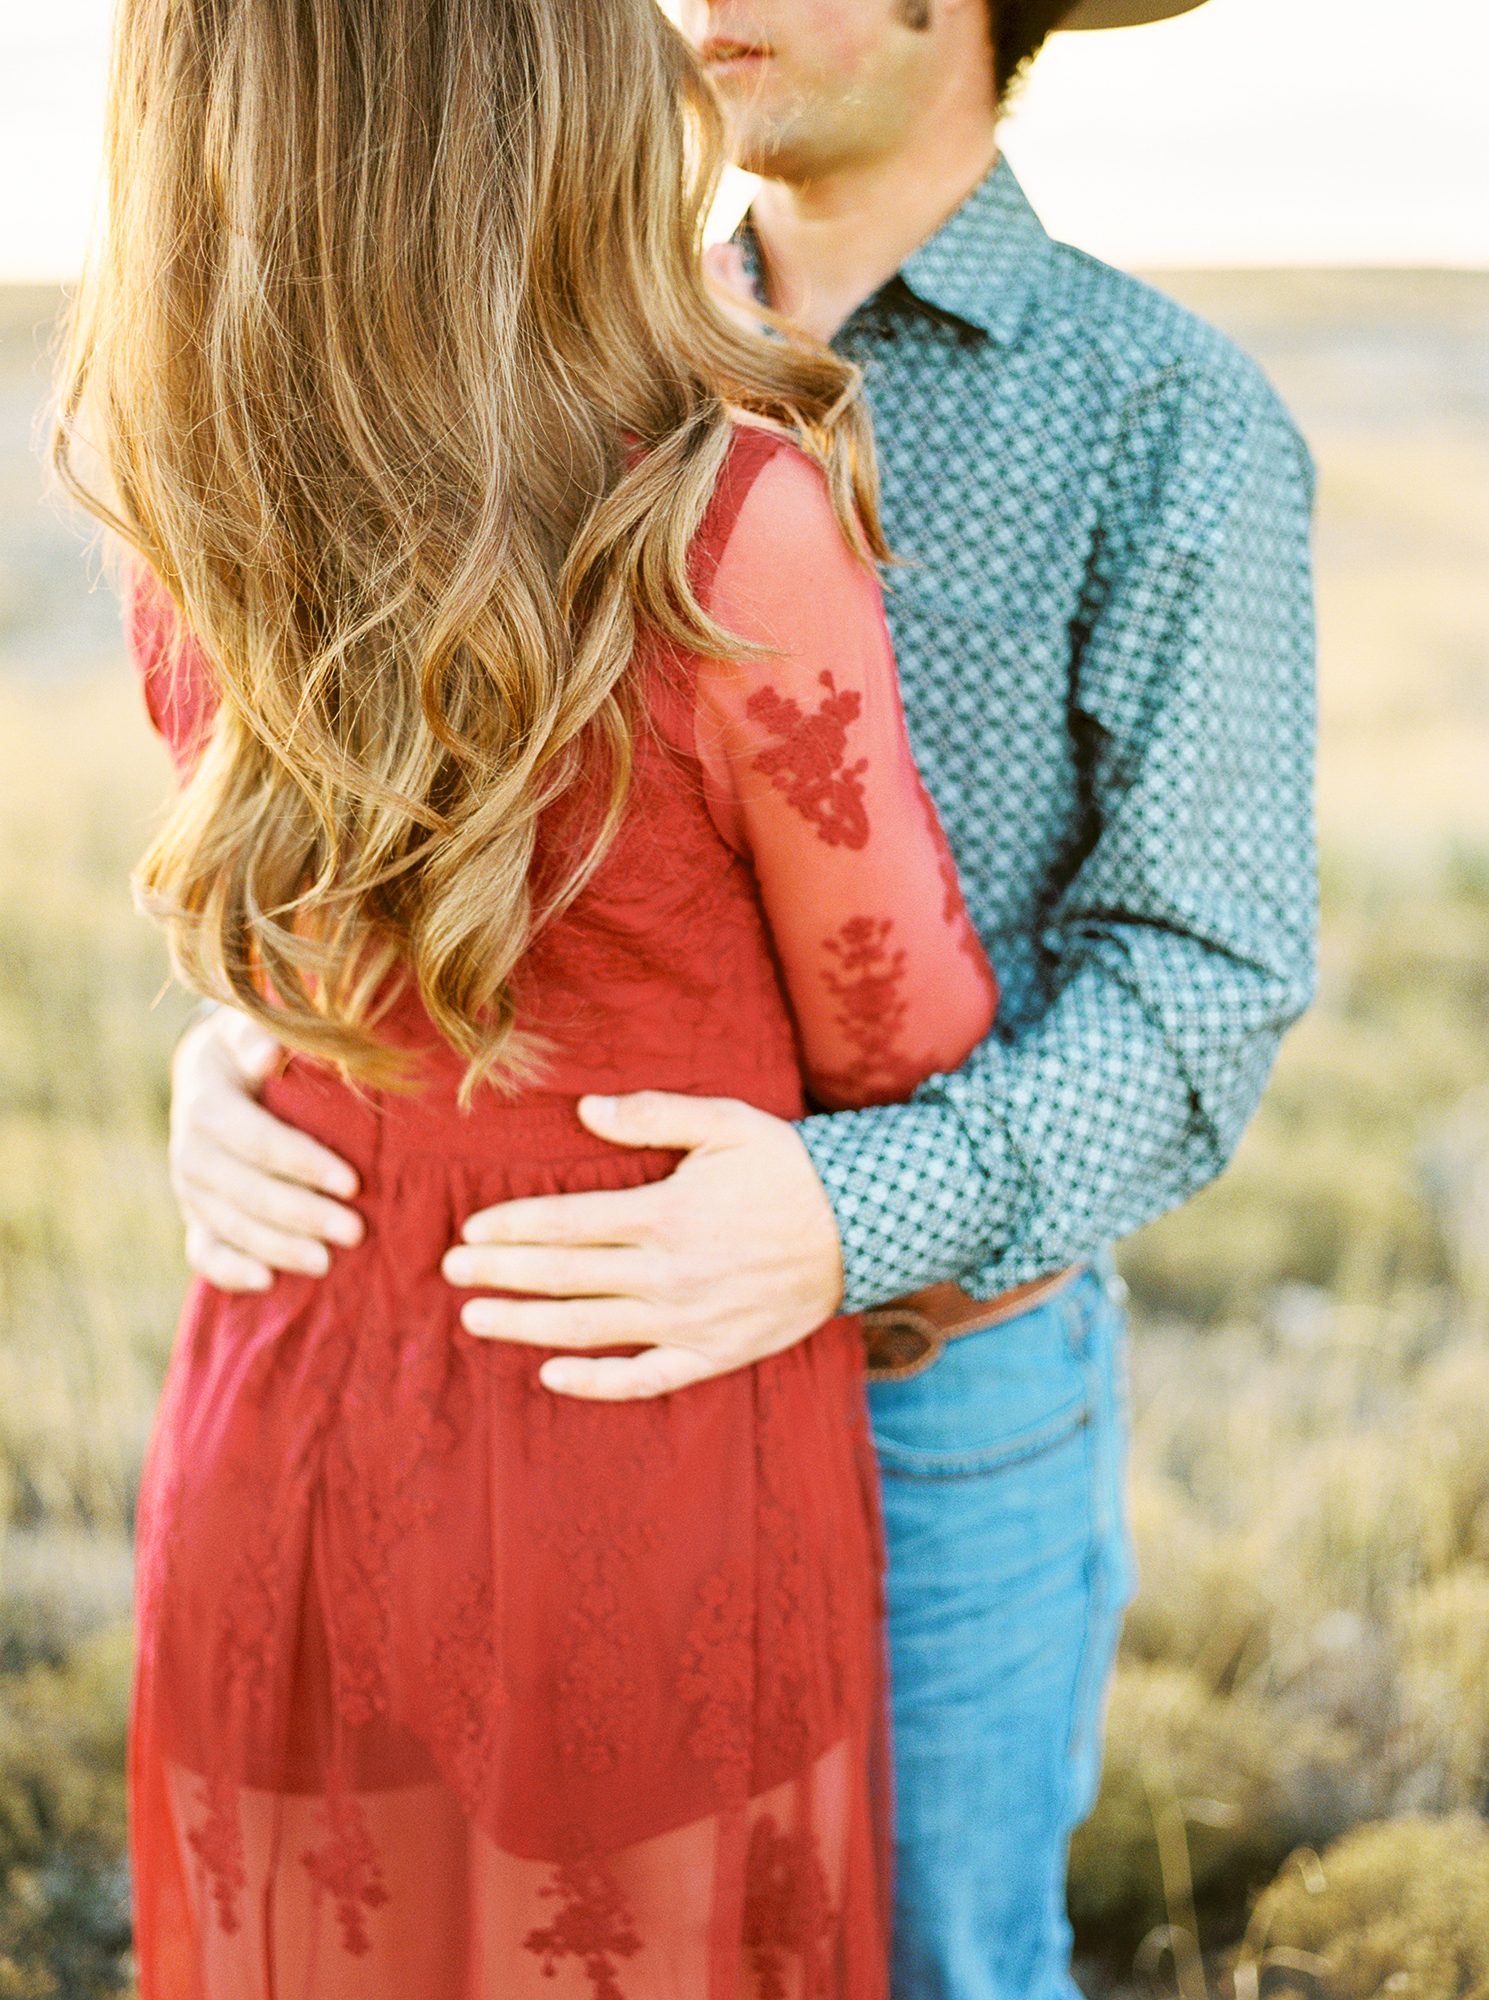 new-mexico-engagement-photographer-skylar-rain-photography-k-l-1.jpg